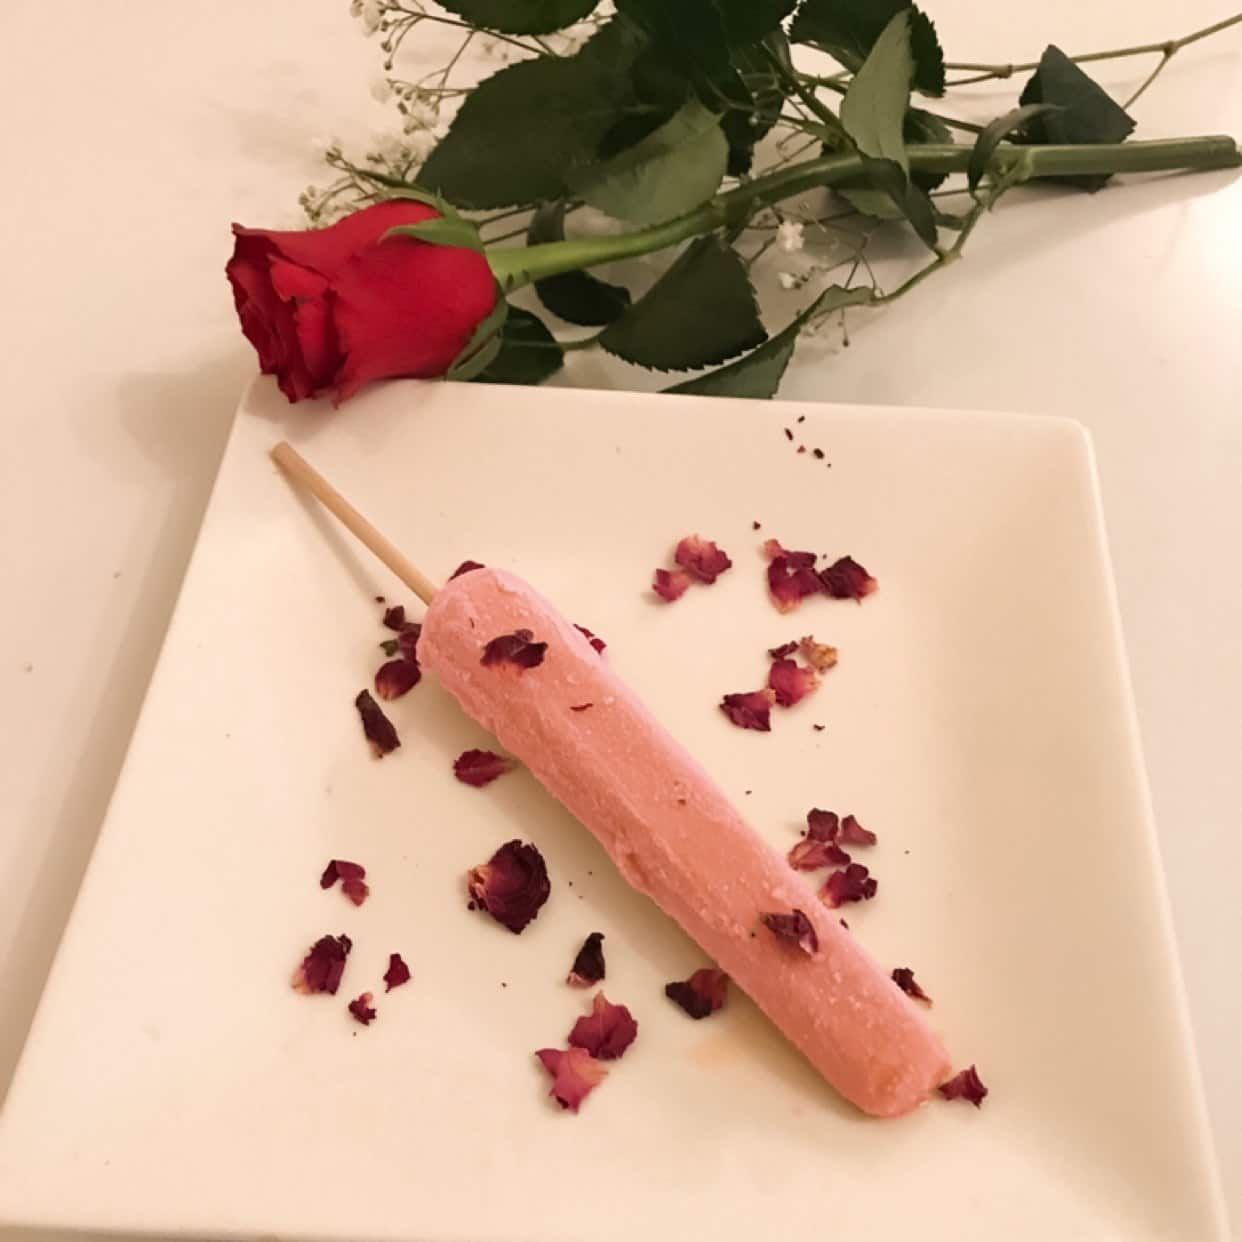 Say it with Rose. It's always the best option. Kulfi Wala presents Gulkhand for your floral taste buds. Simply refreshing and fragrant